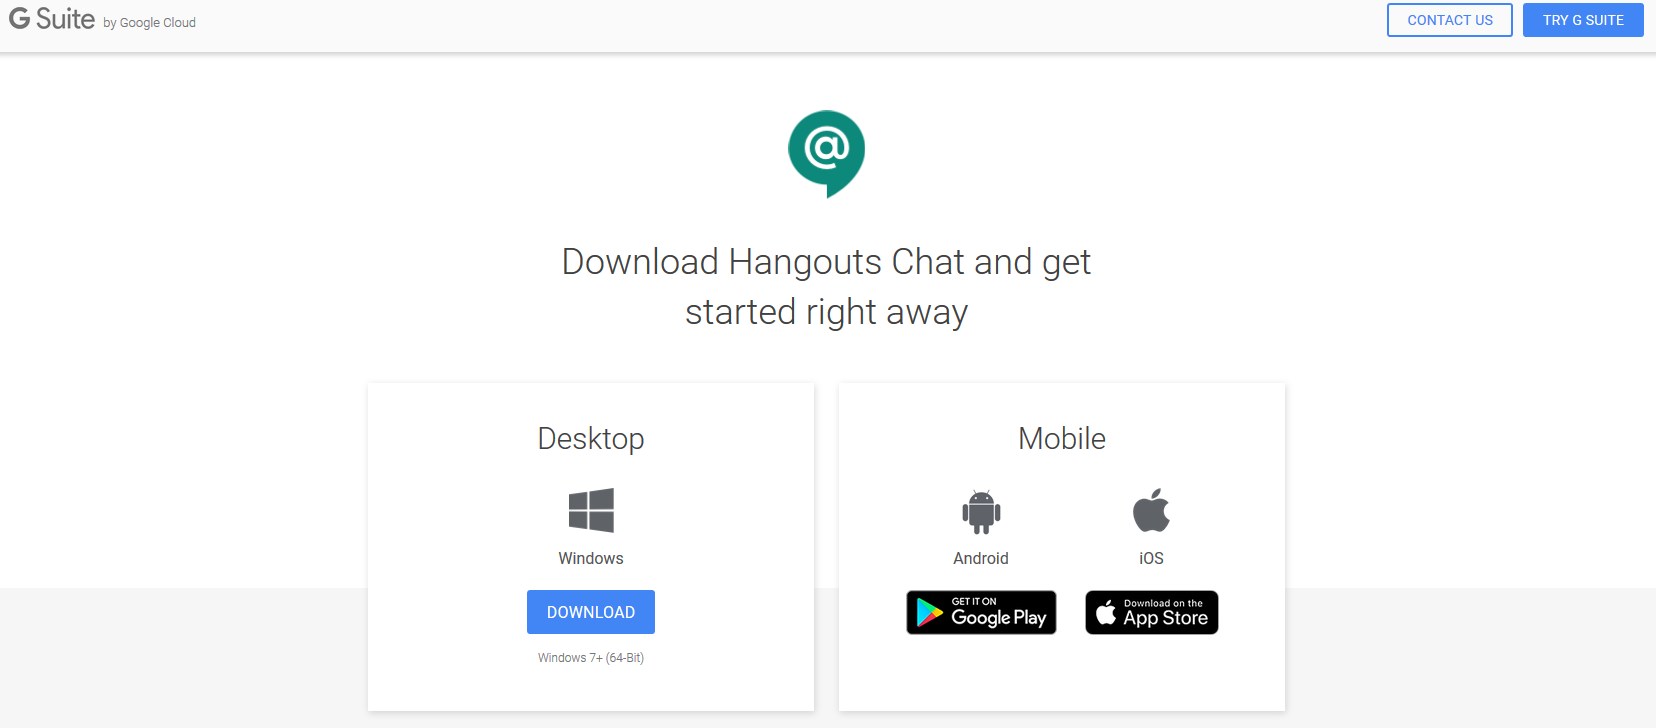 Download_Hangouts_Char.PNG